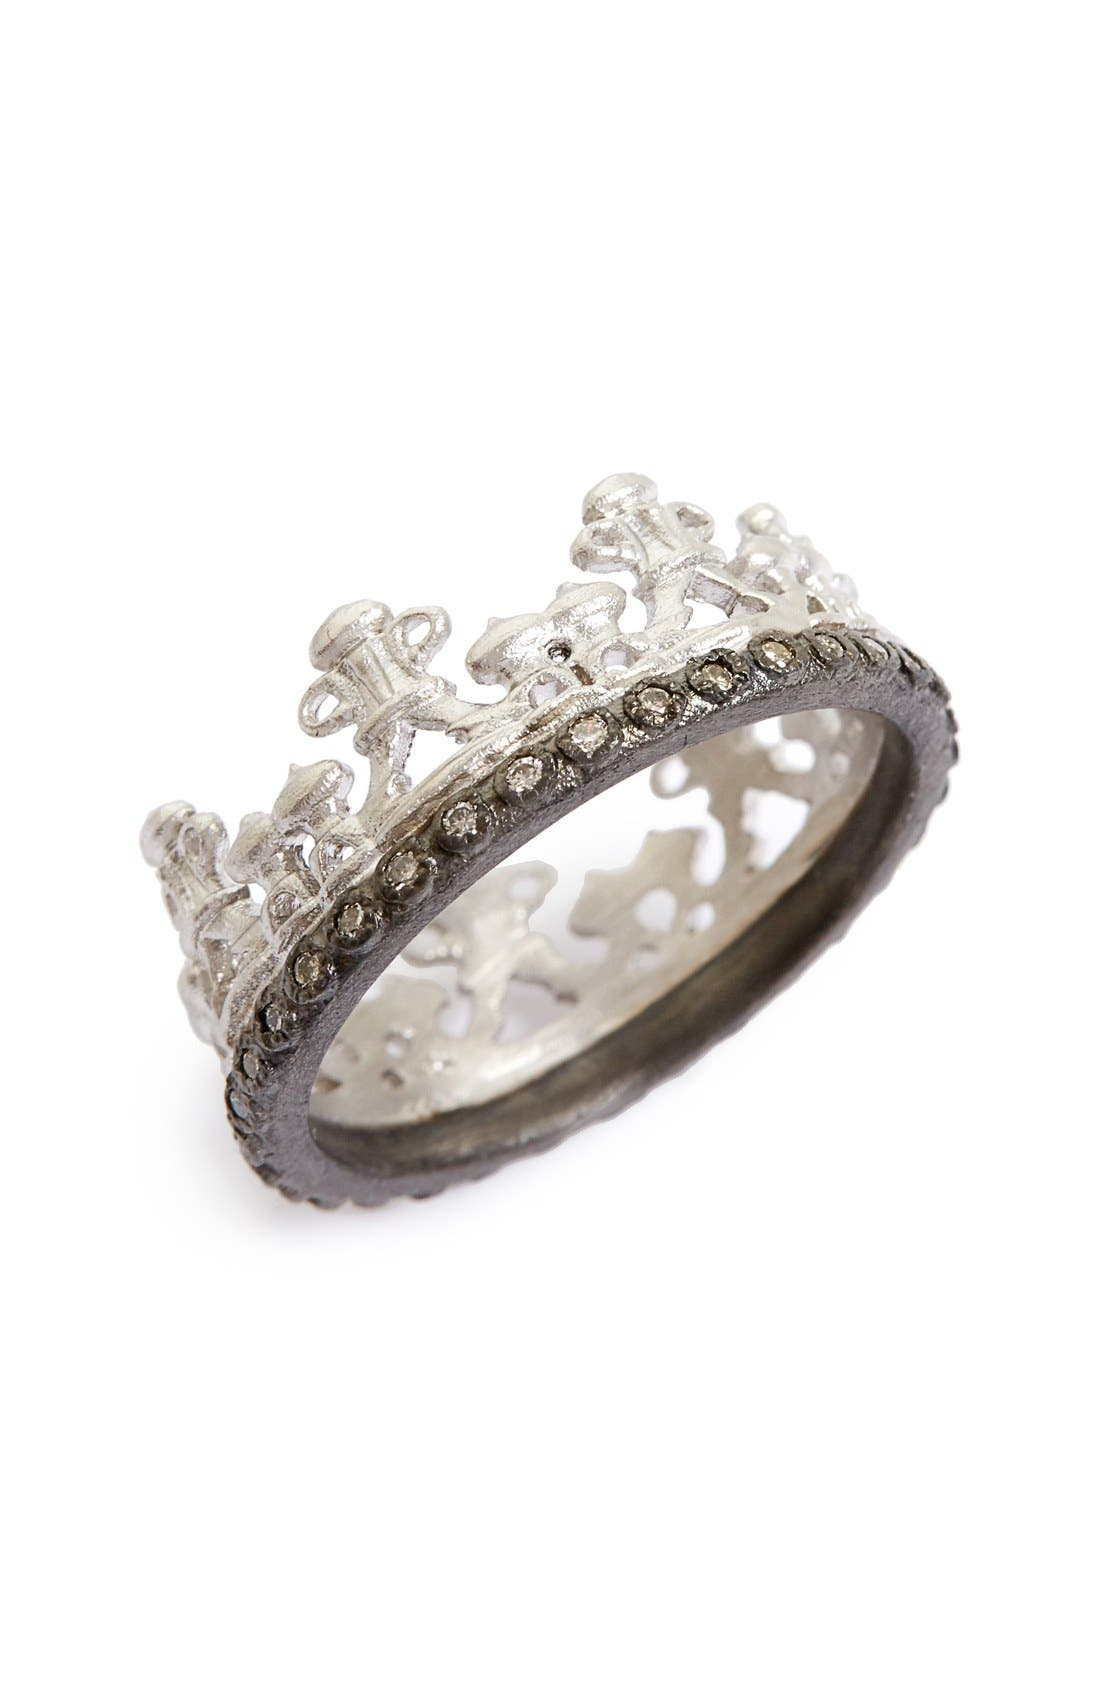 Main Image - Armenta Old World Half Crown Diamond Ring